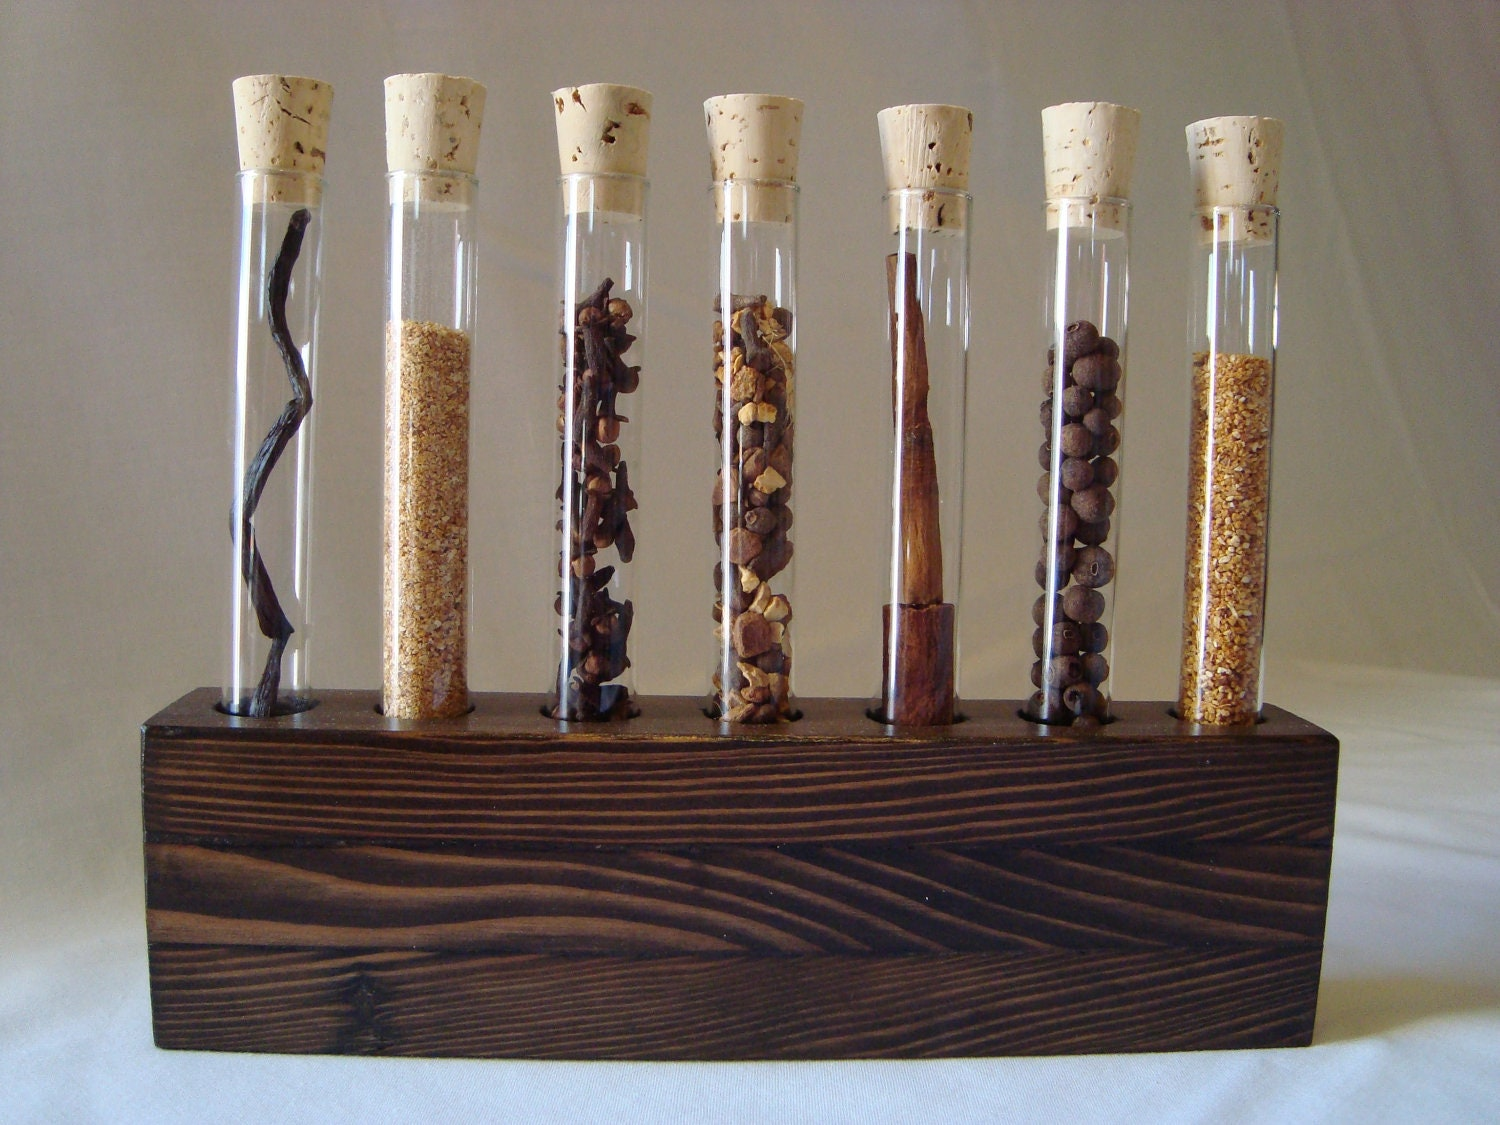 Spice Rack Test Tube Blemish Rack 7 Autumn Spice Blend